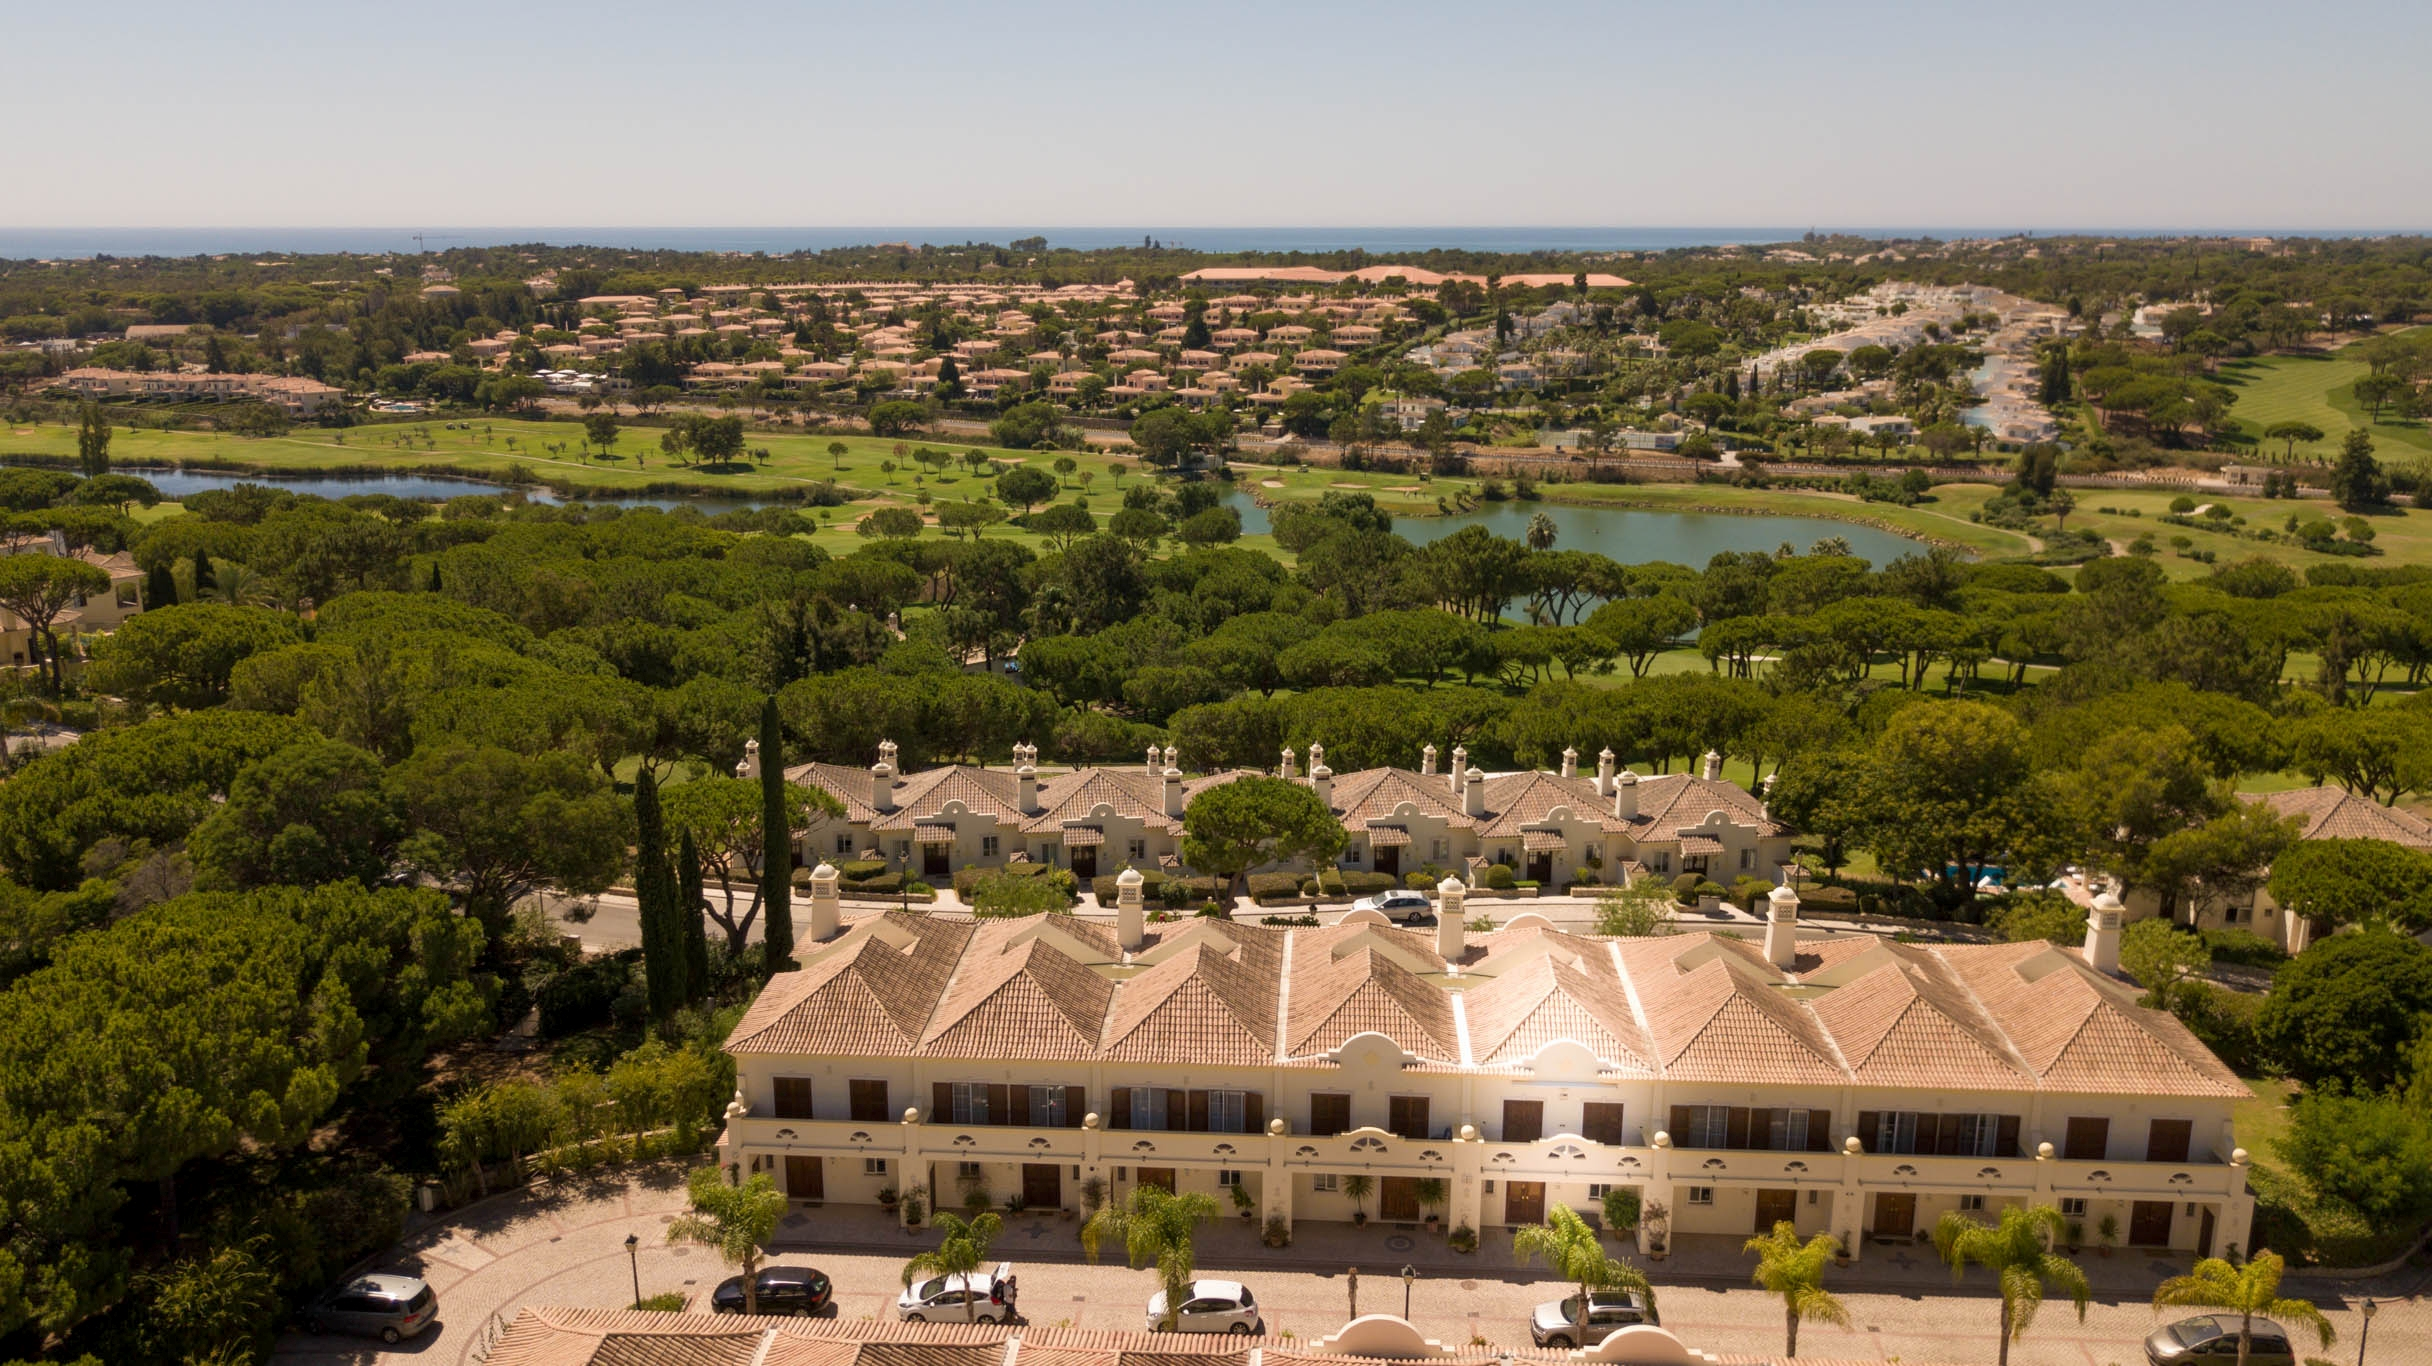 3 Bedroom Luxury Townhouse, next to Golf Courses,in Quinta do Lago | PRB207 3 bedroom townhouse in a quiet location, close to golf courses and beaches. It is south facing and perfect for permanent living or holidays.